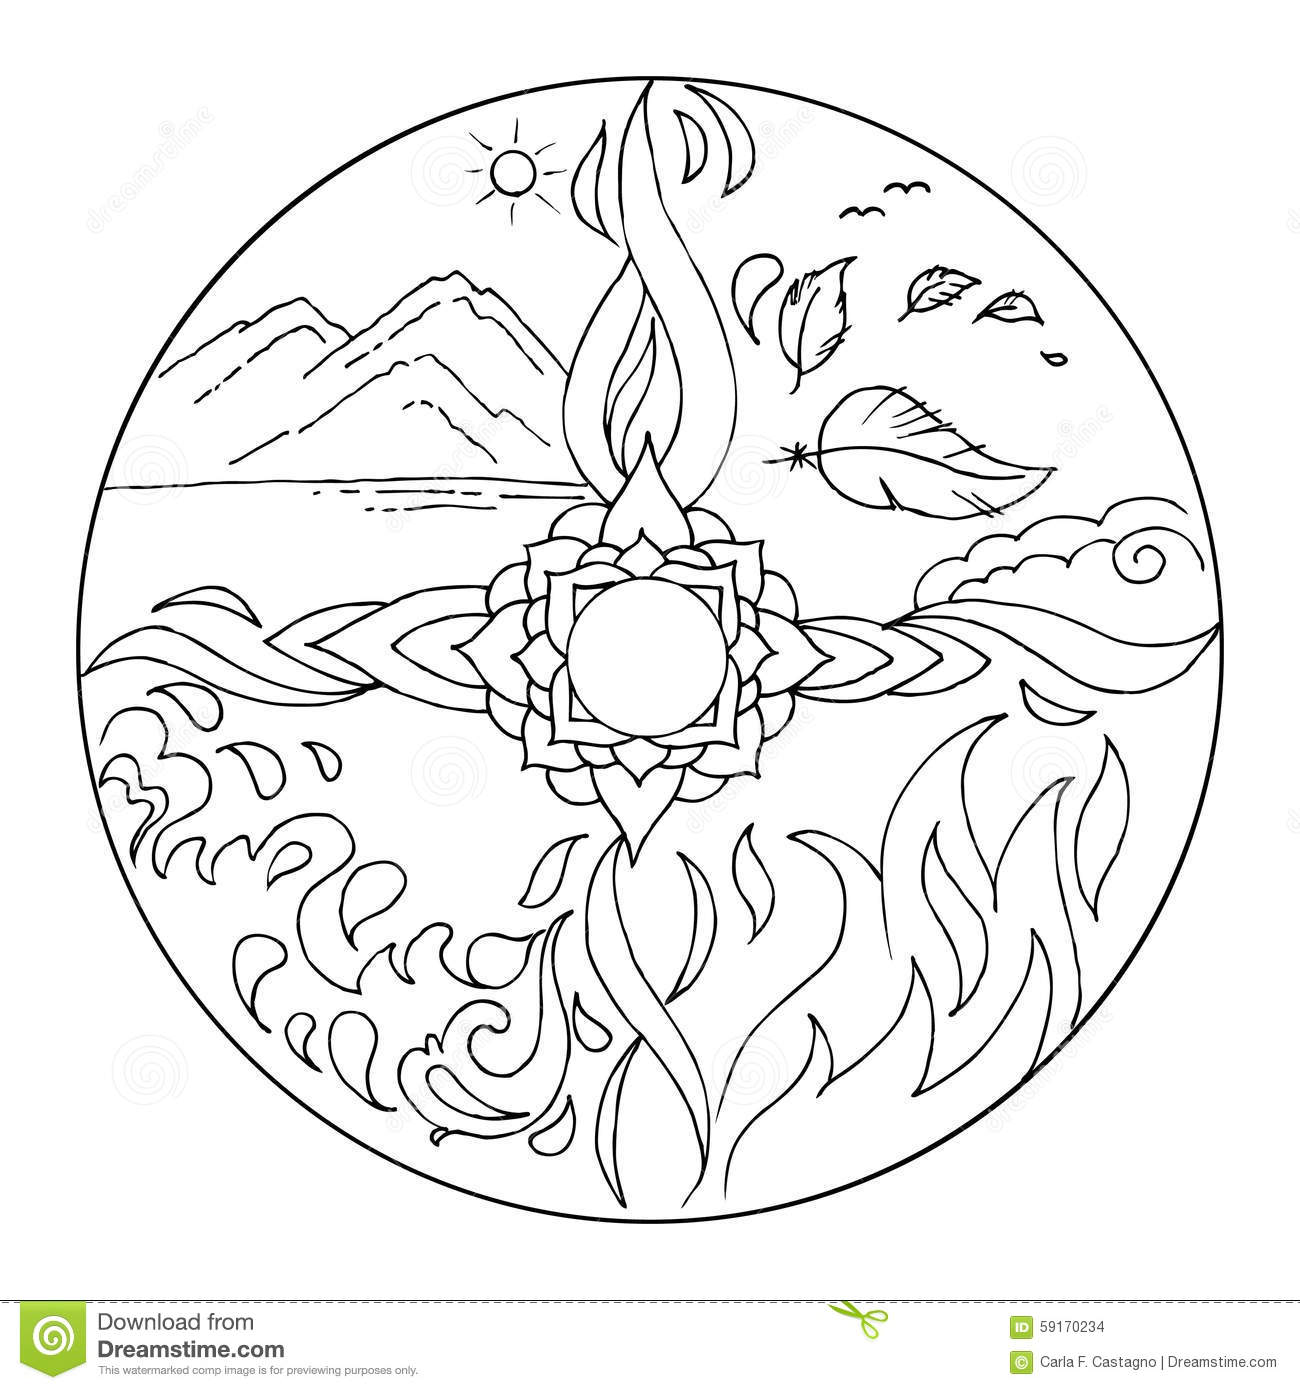 Science Adult Coloring Page